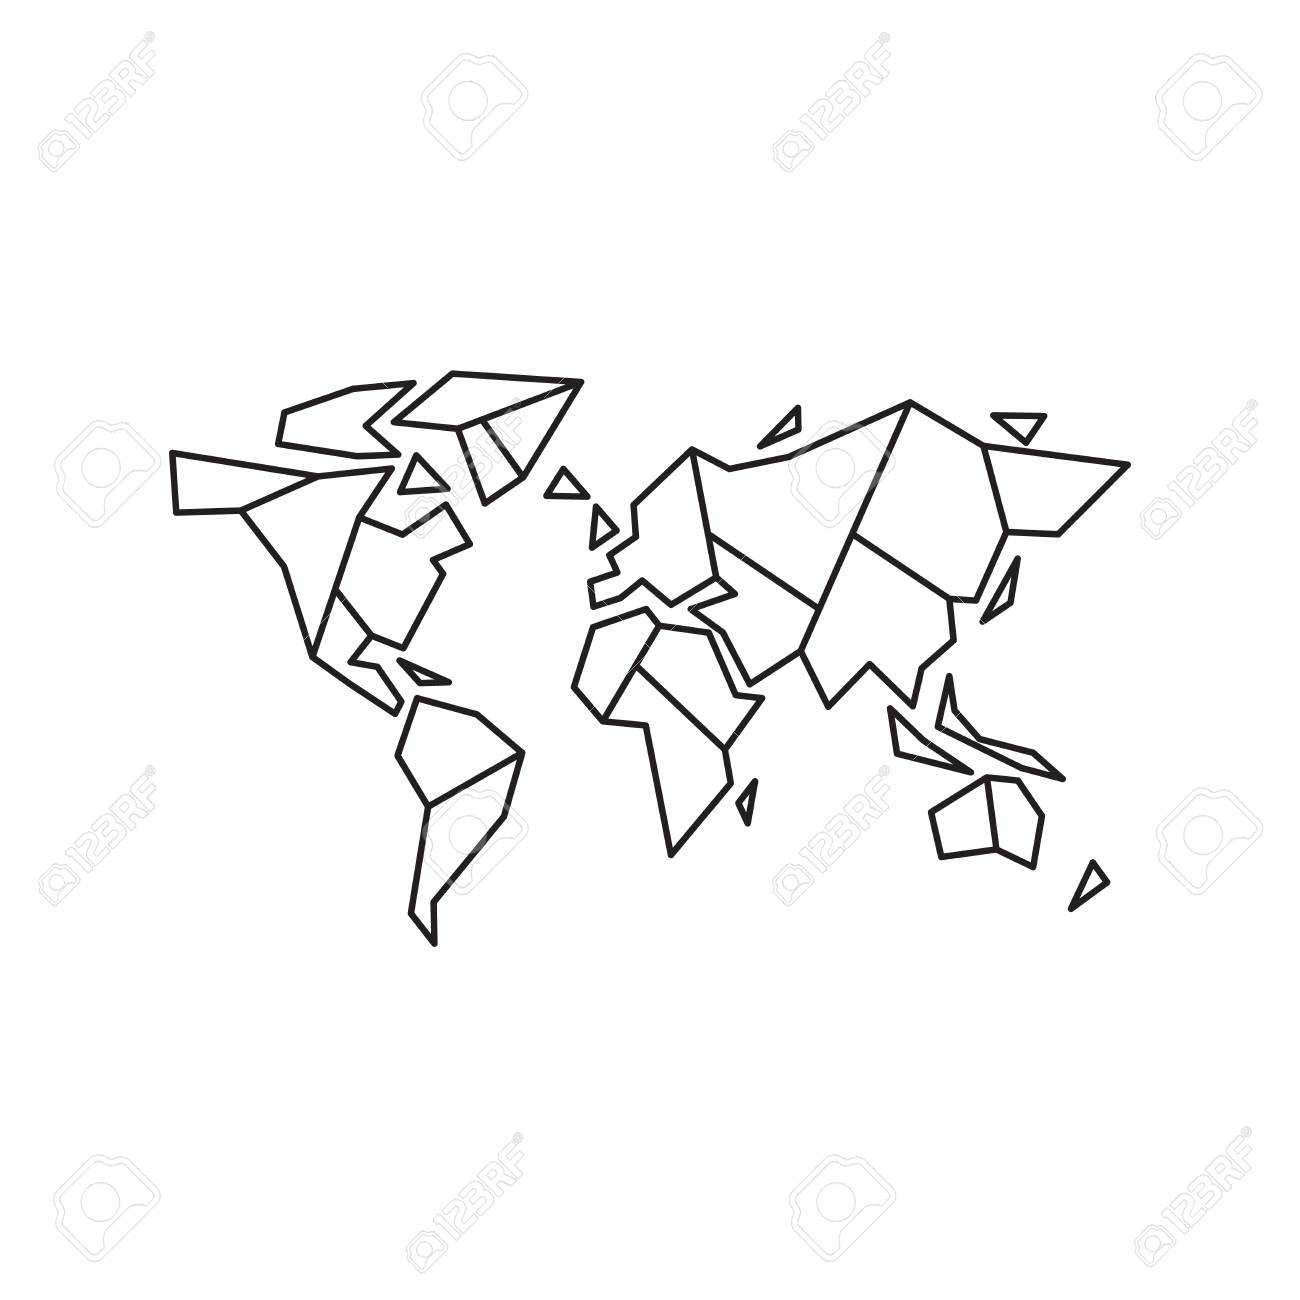 Abstract Geometric World Map Vector Illustration Eps 10 Royalty